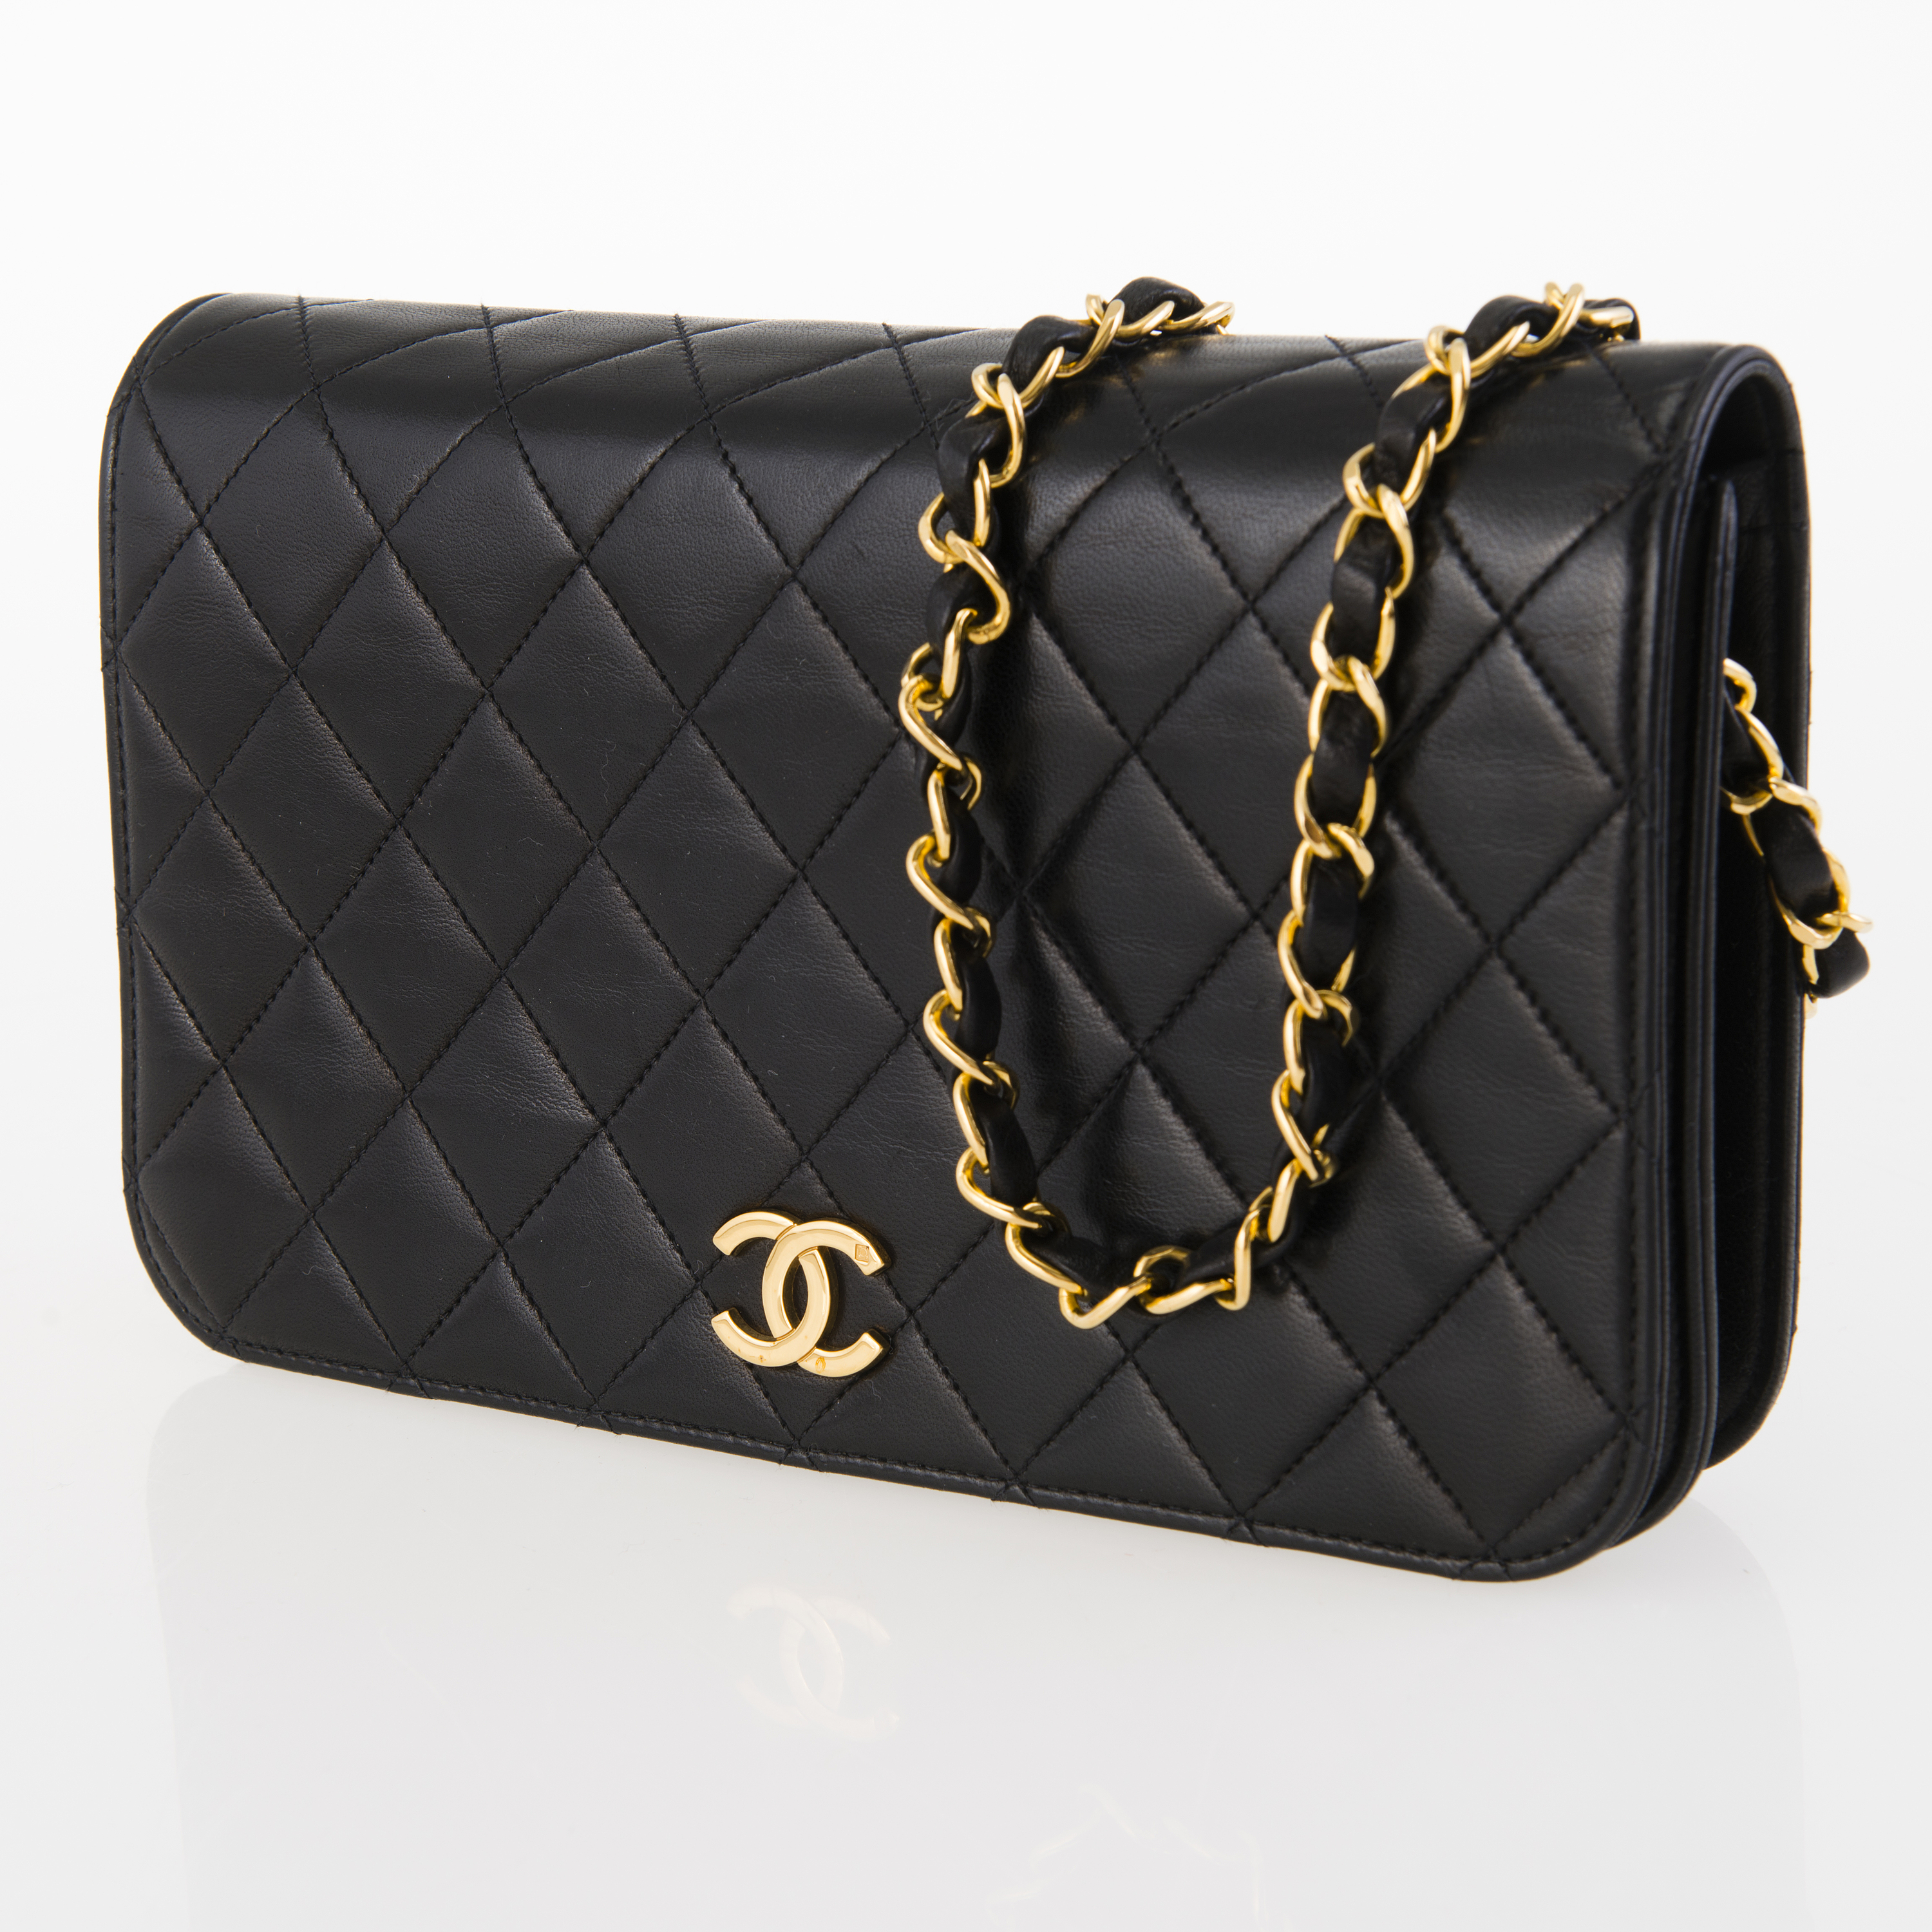 26369543bb94f8 CHANEL Small Single Full Flap Bag. - Bukowskis